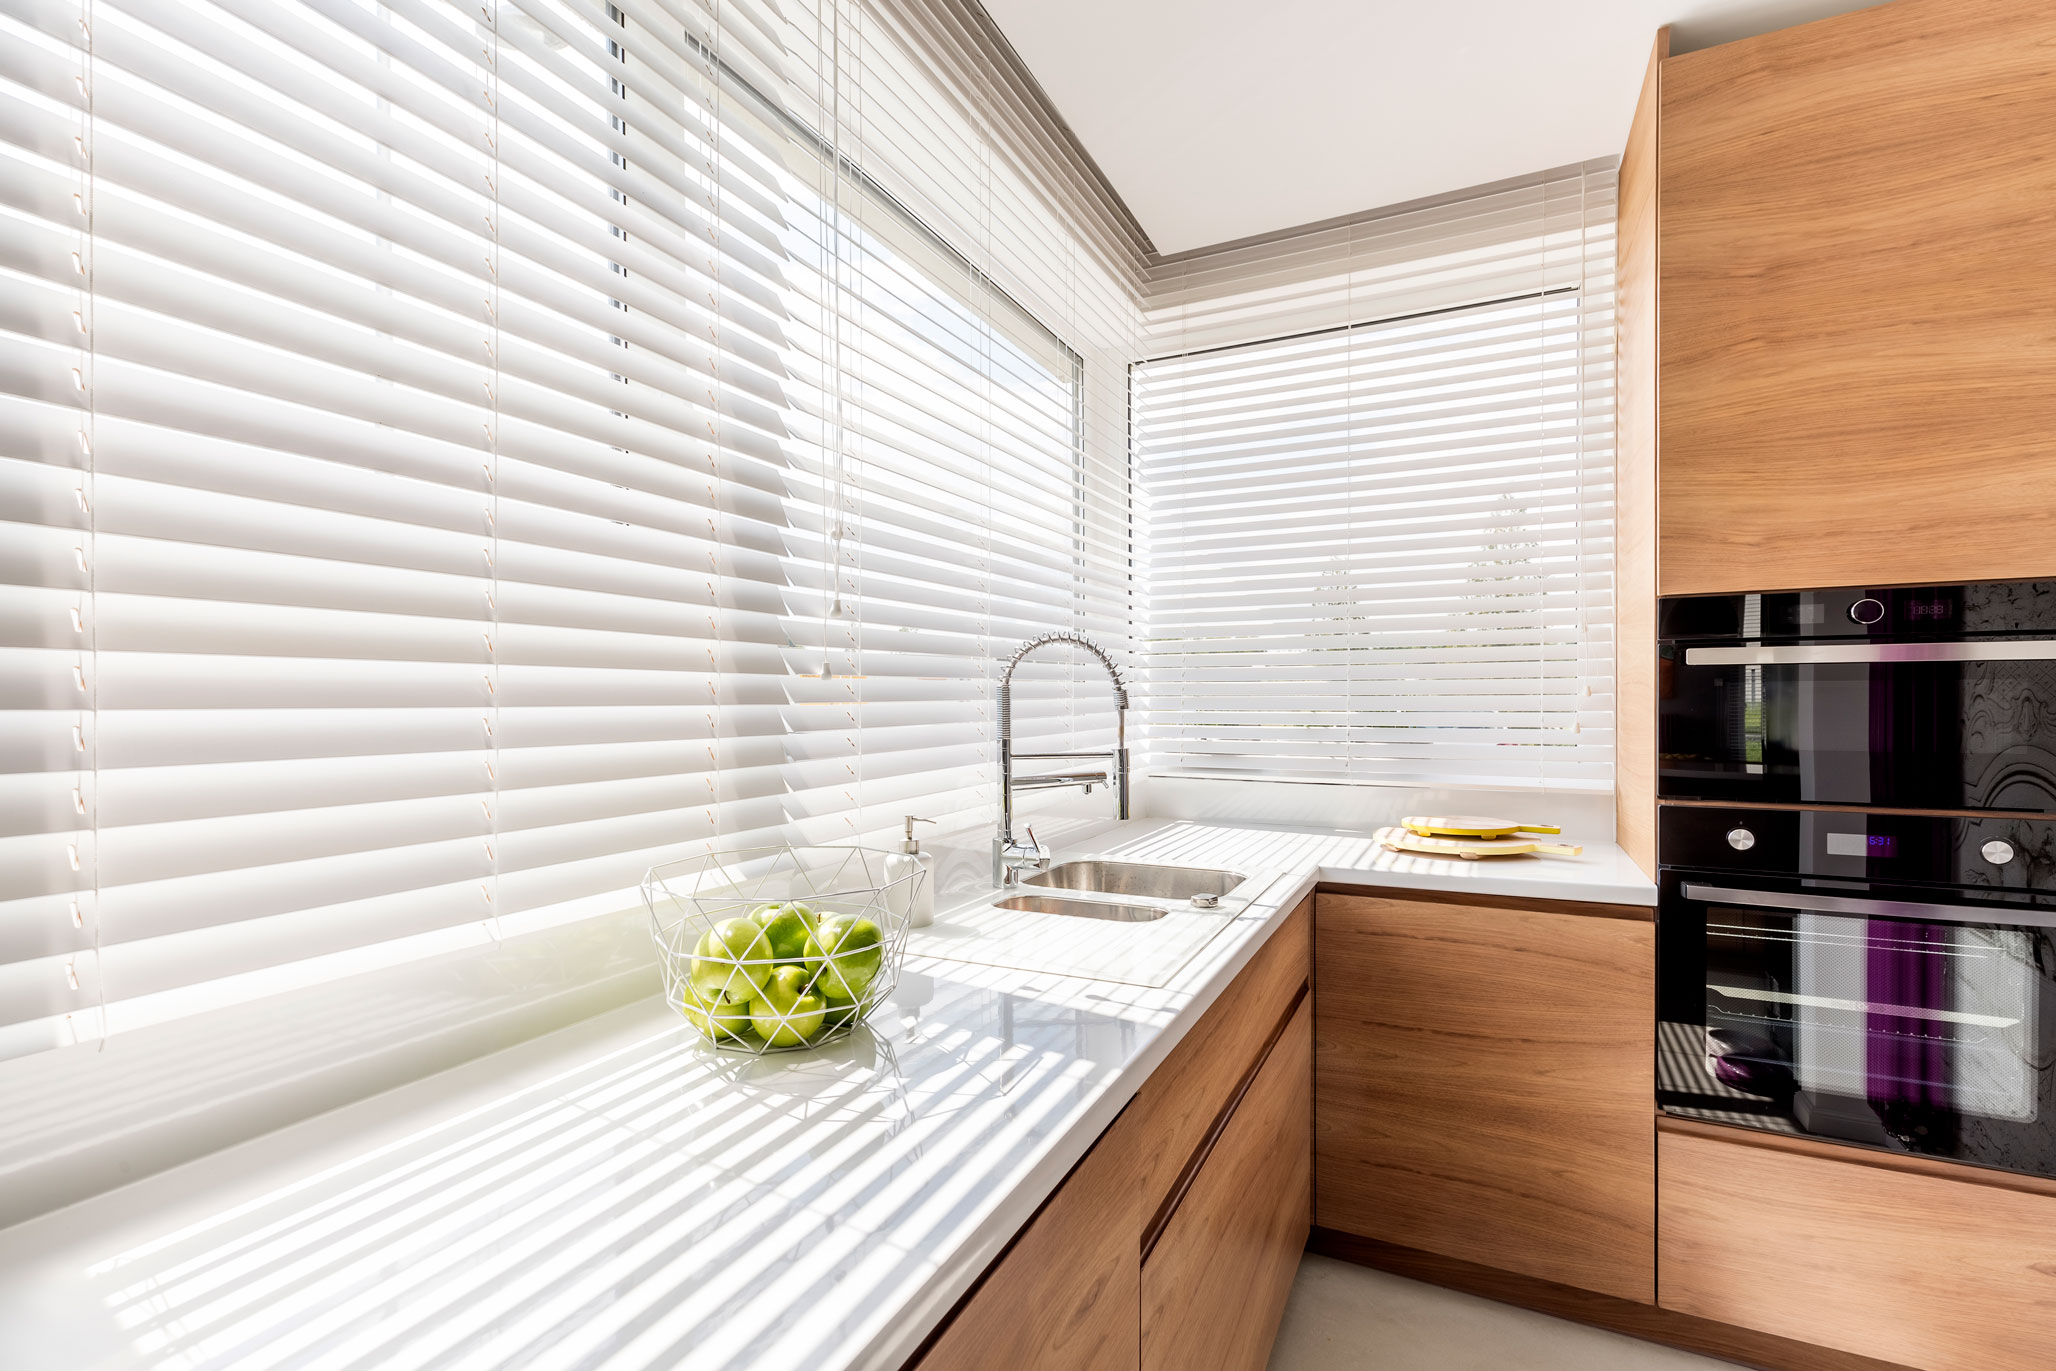 Replacement Blind Slats Amp Valances For Repair Made To Order